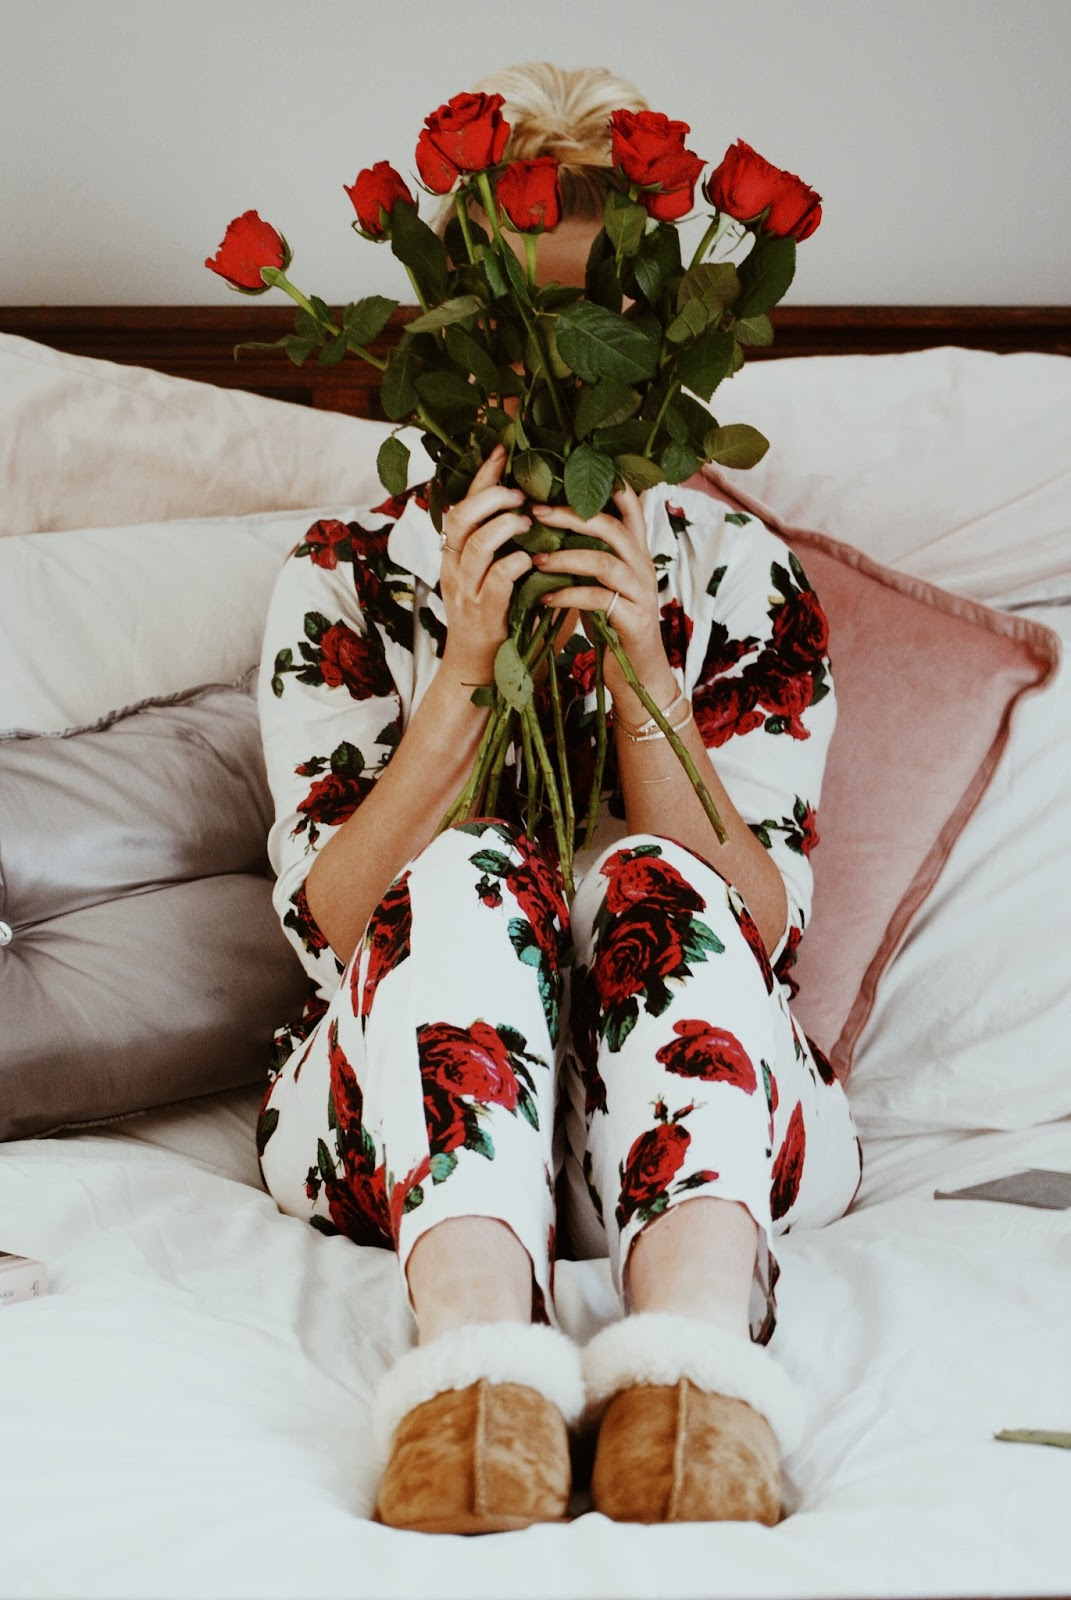 a girls first love bed red roses photography rose pyjamas ugg slippers cosy night in